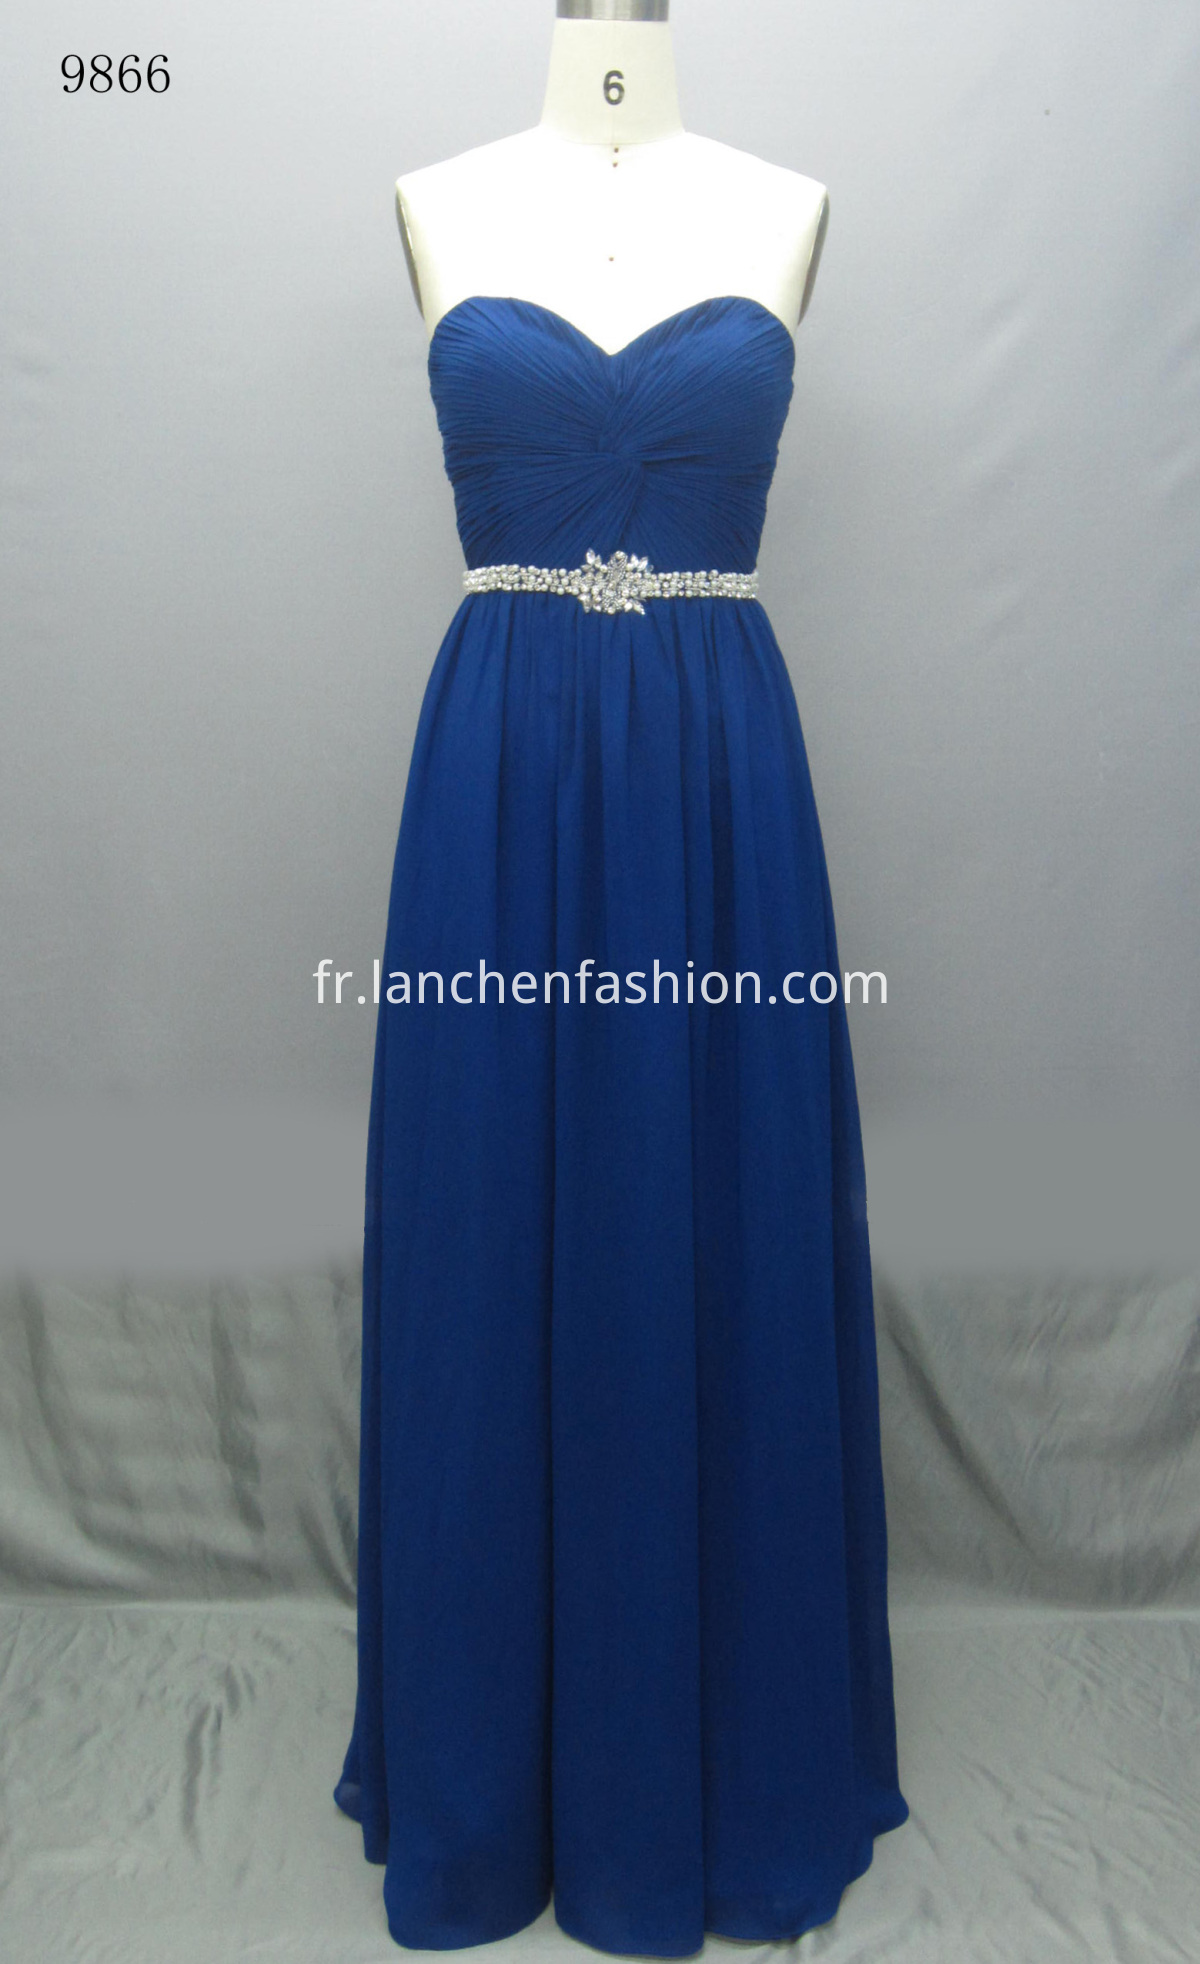 Vintage Maxi Dress ROYAL